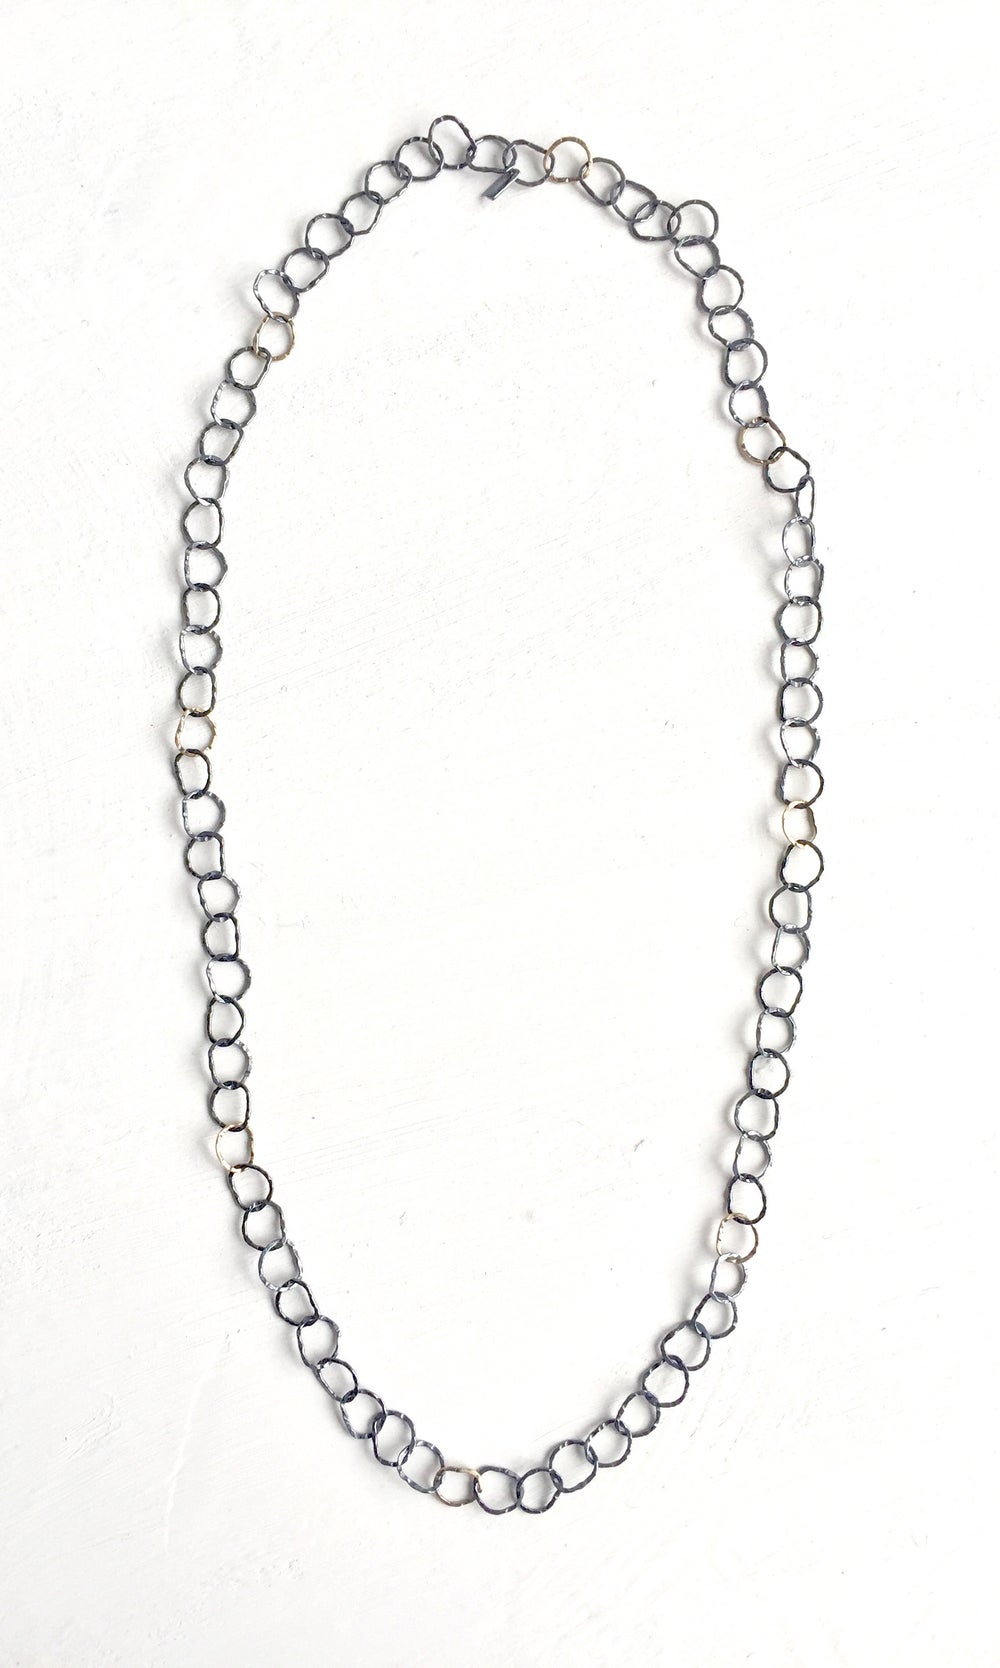 Image of Afiok long necklace no clasp series- oxidised silver & 9ct yellow gold